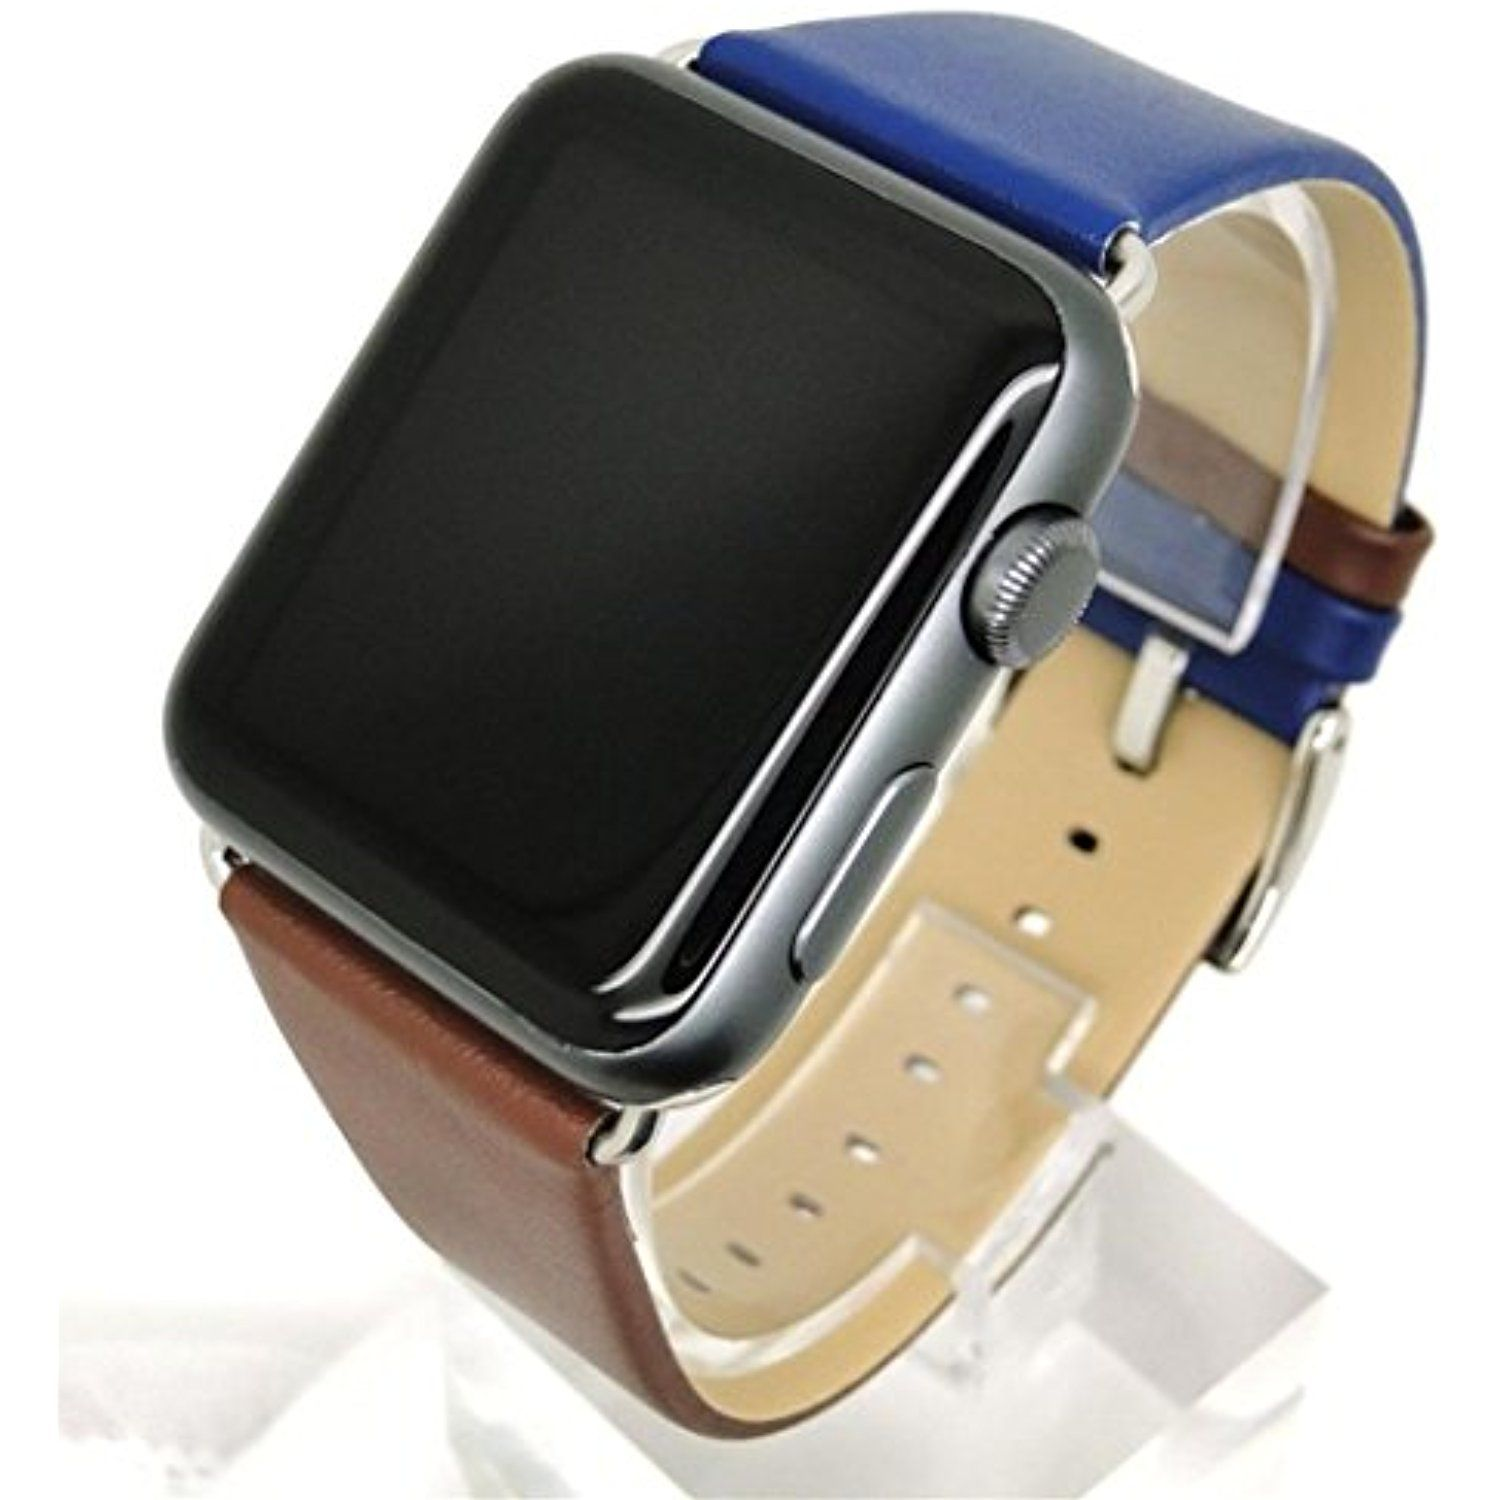 Inverlee Apple Watch Band,Leather Replacement Sports Band